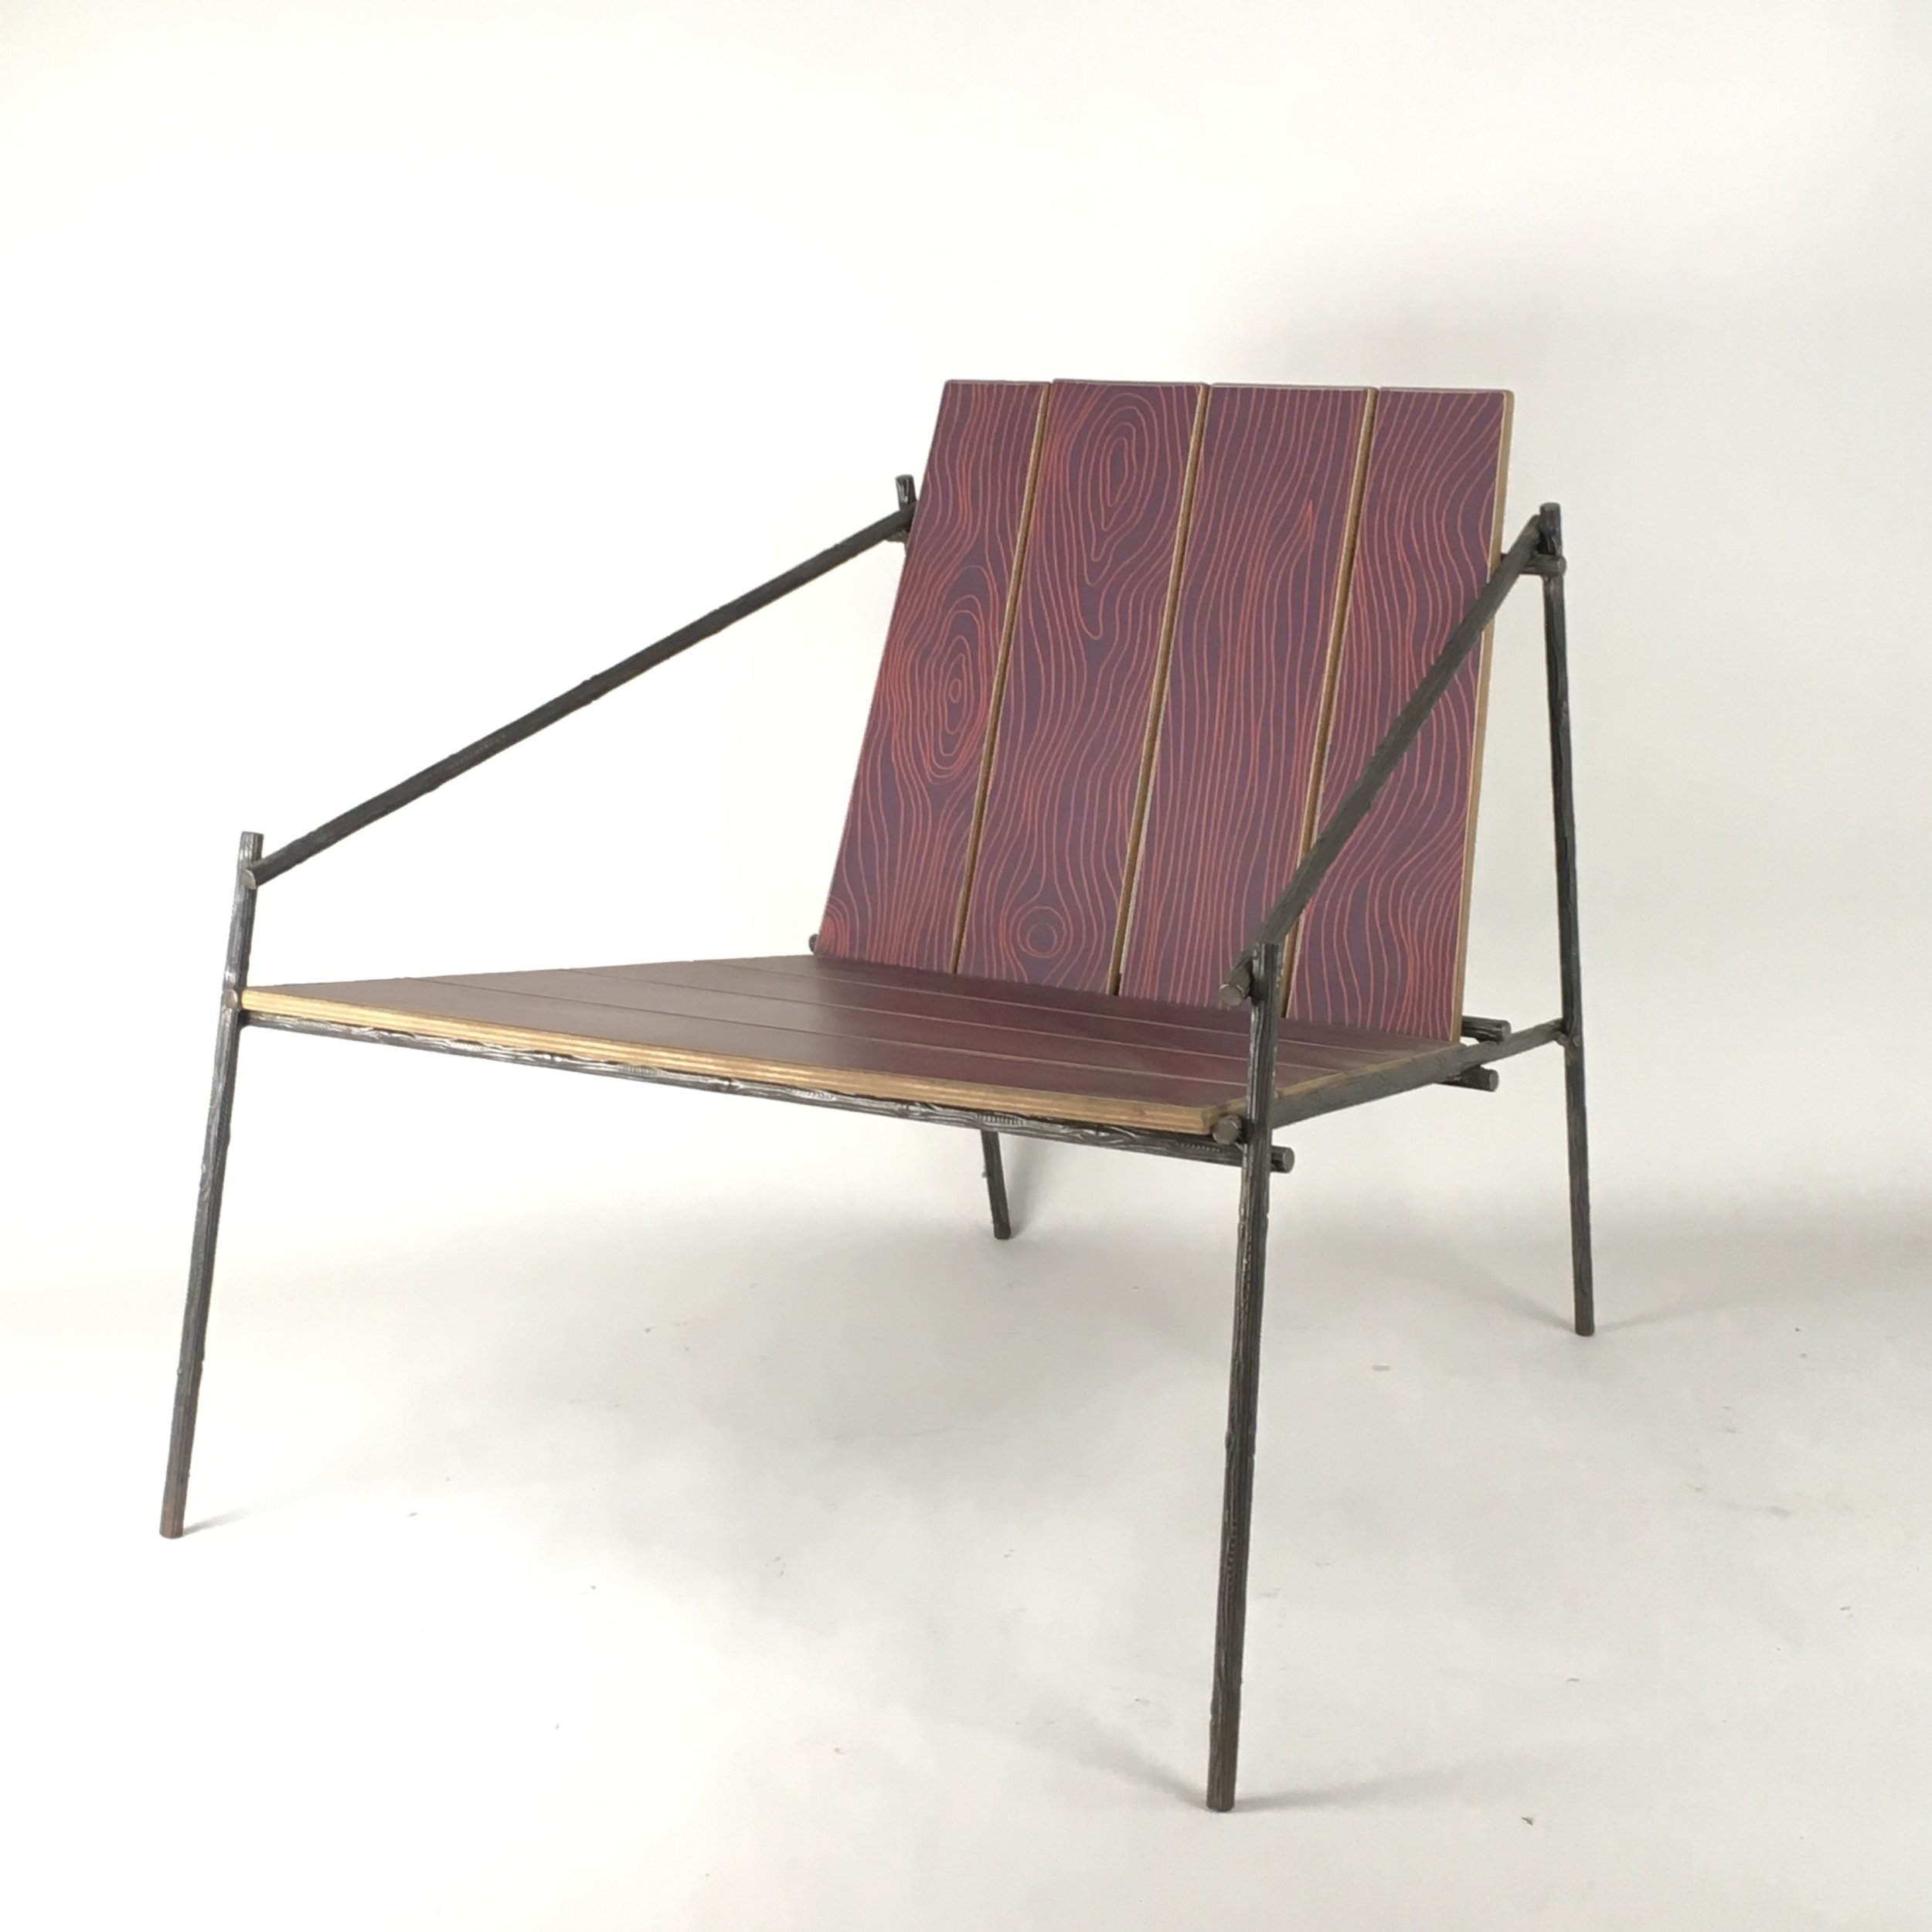 Modern Rustic Lounge Chair